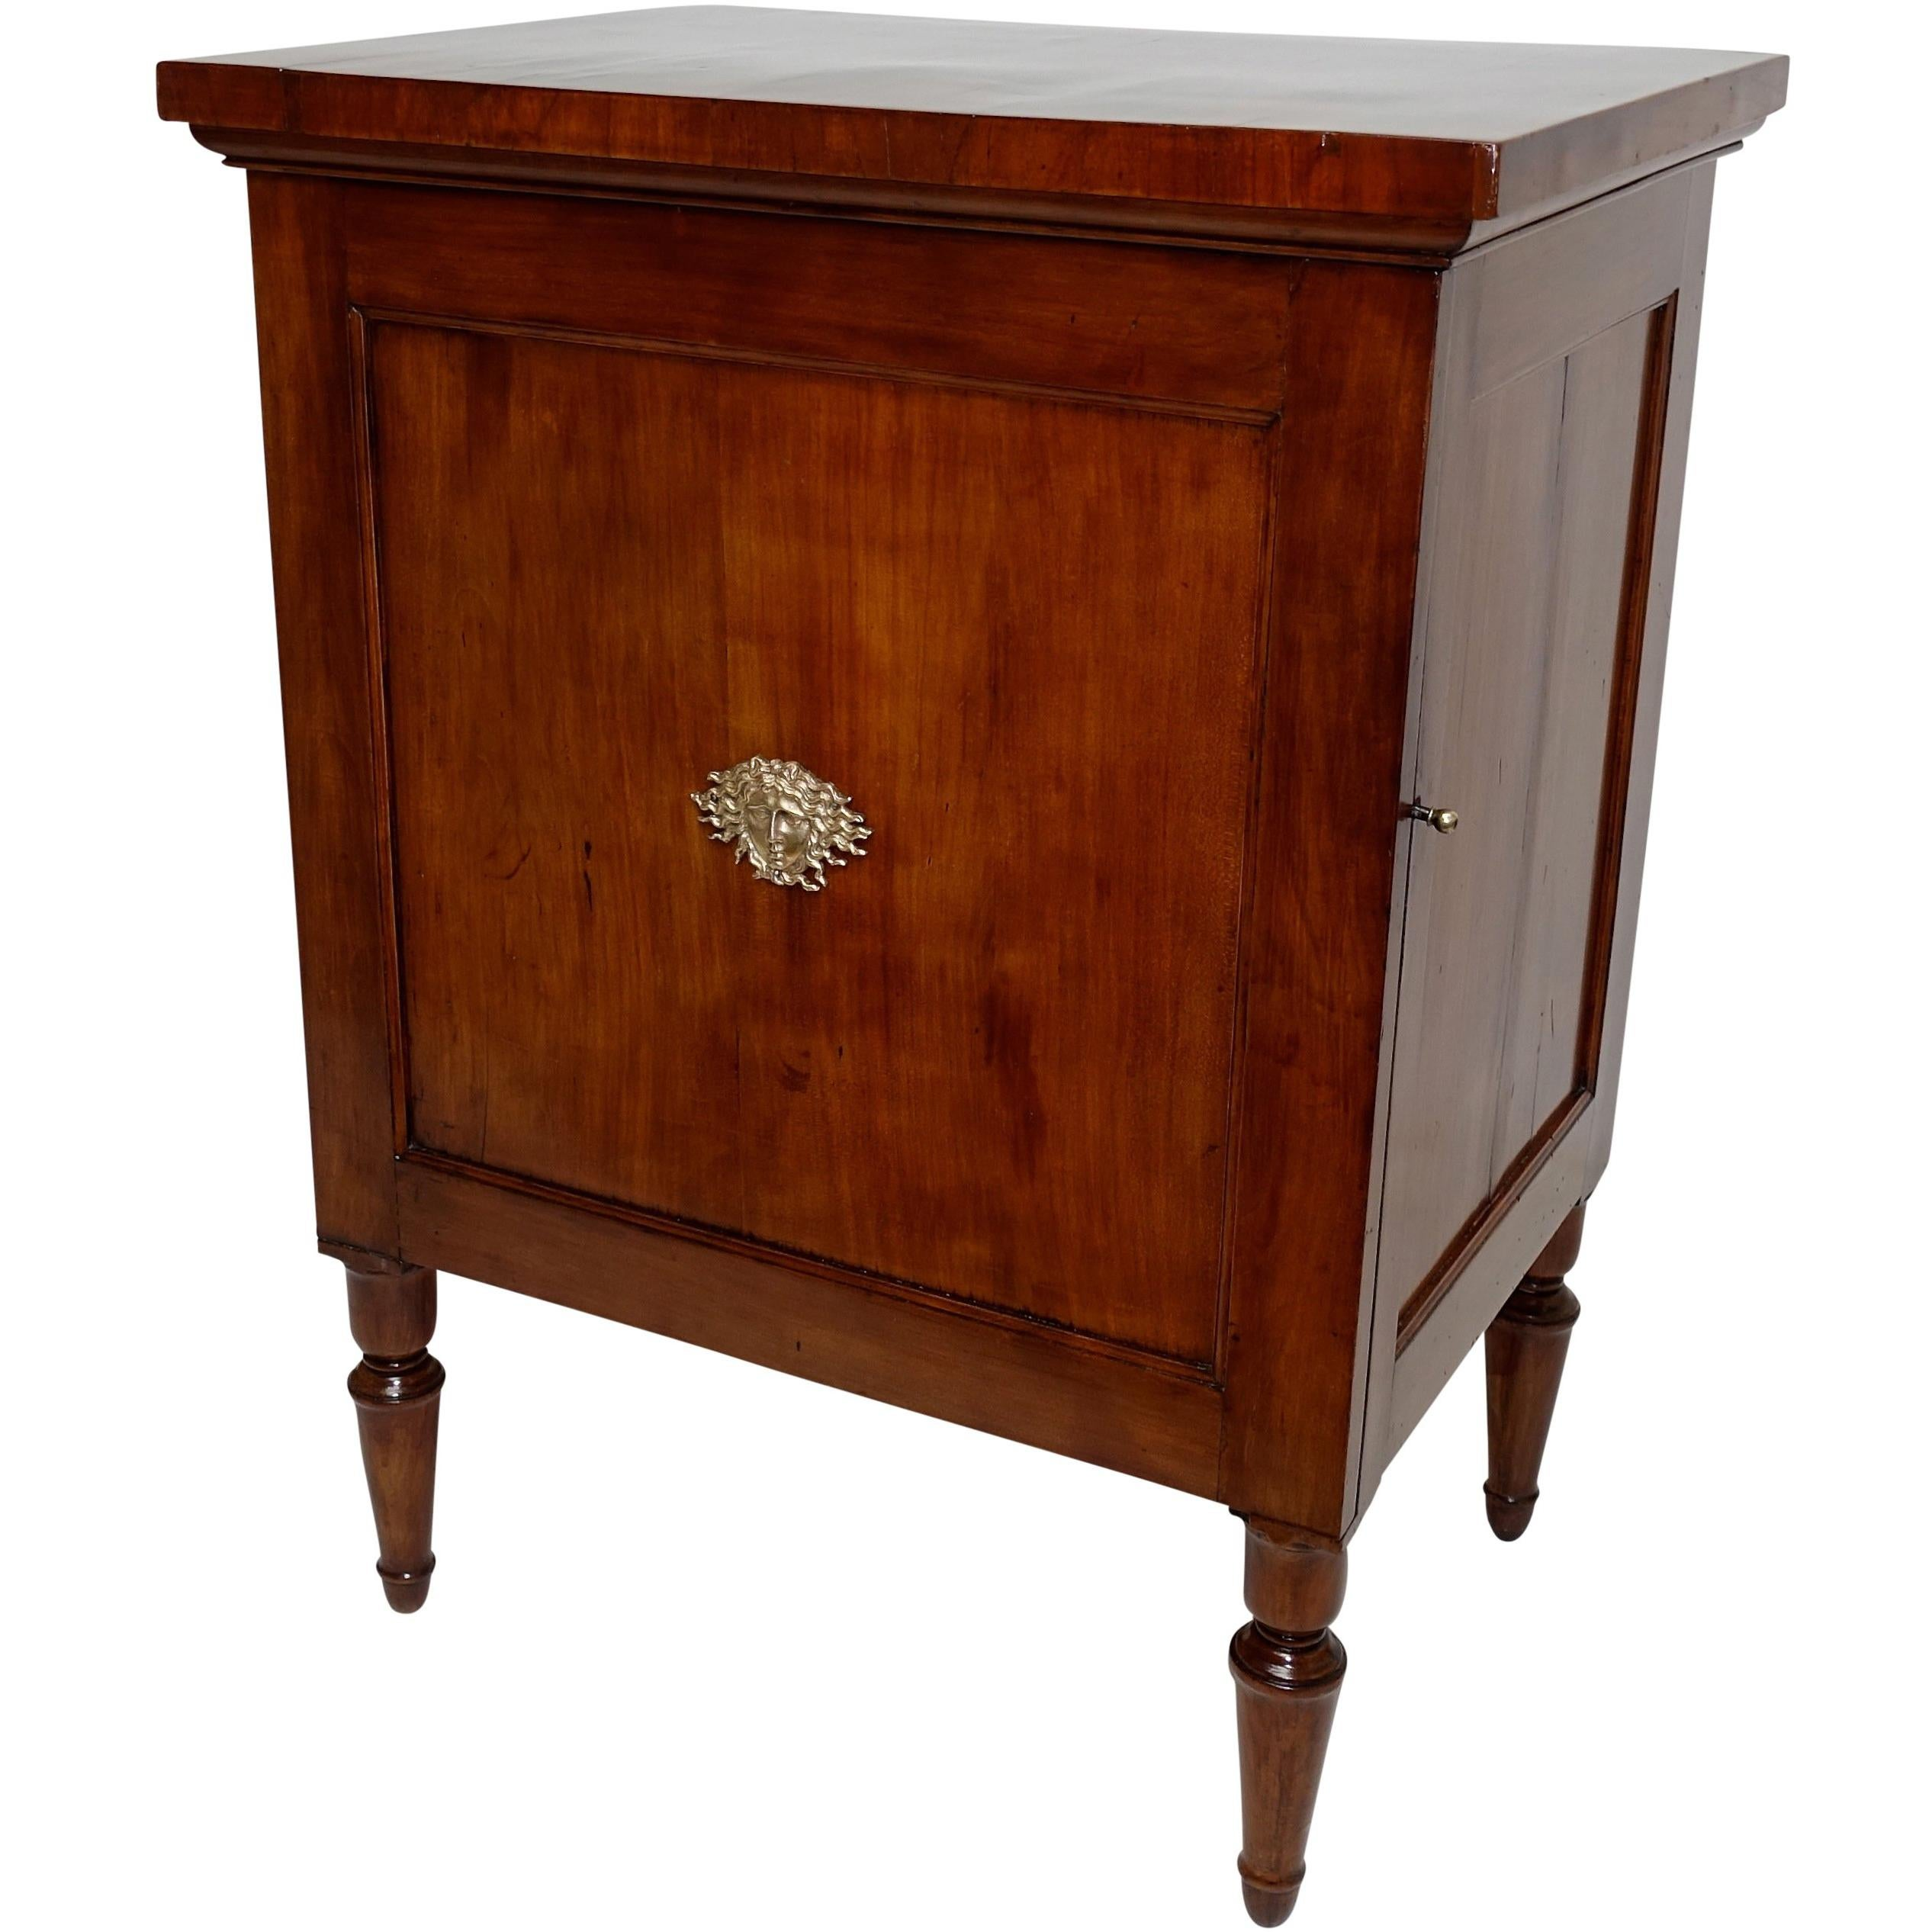 Cherrywood Bedside Cabinet, French, Late 18th-Early 19th Century